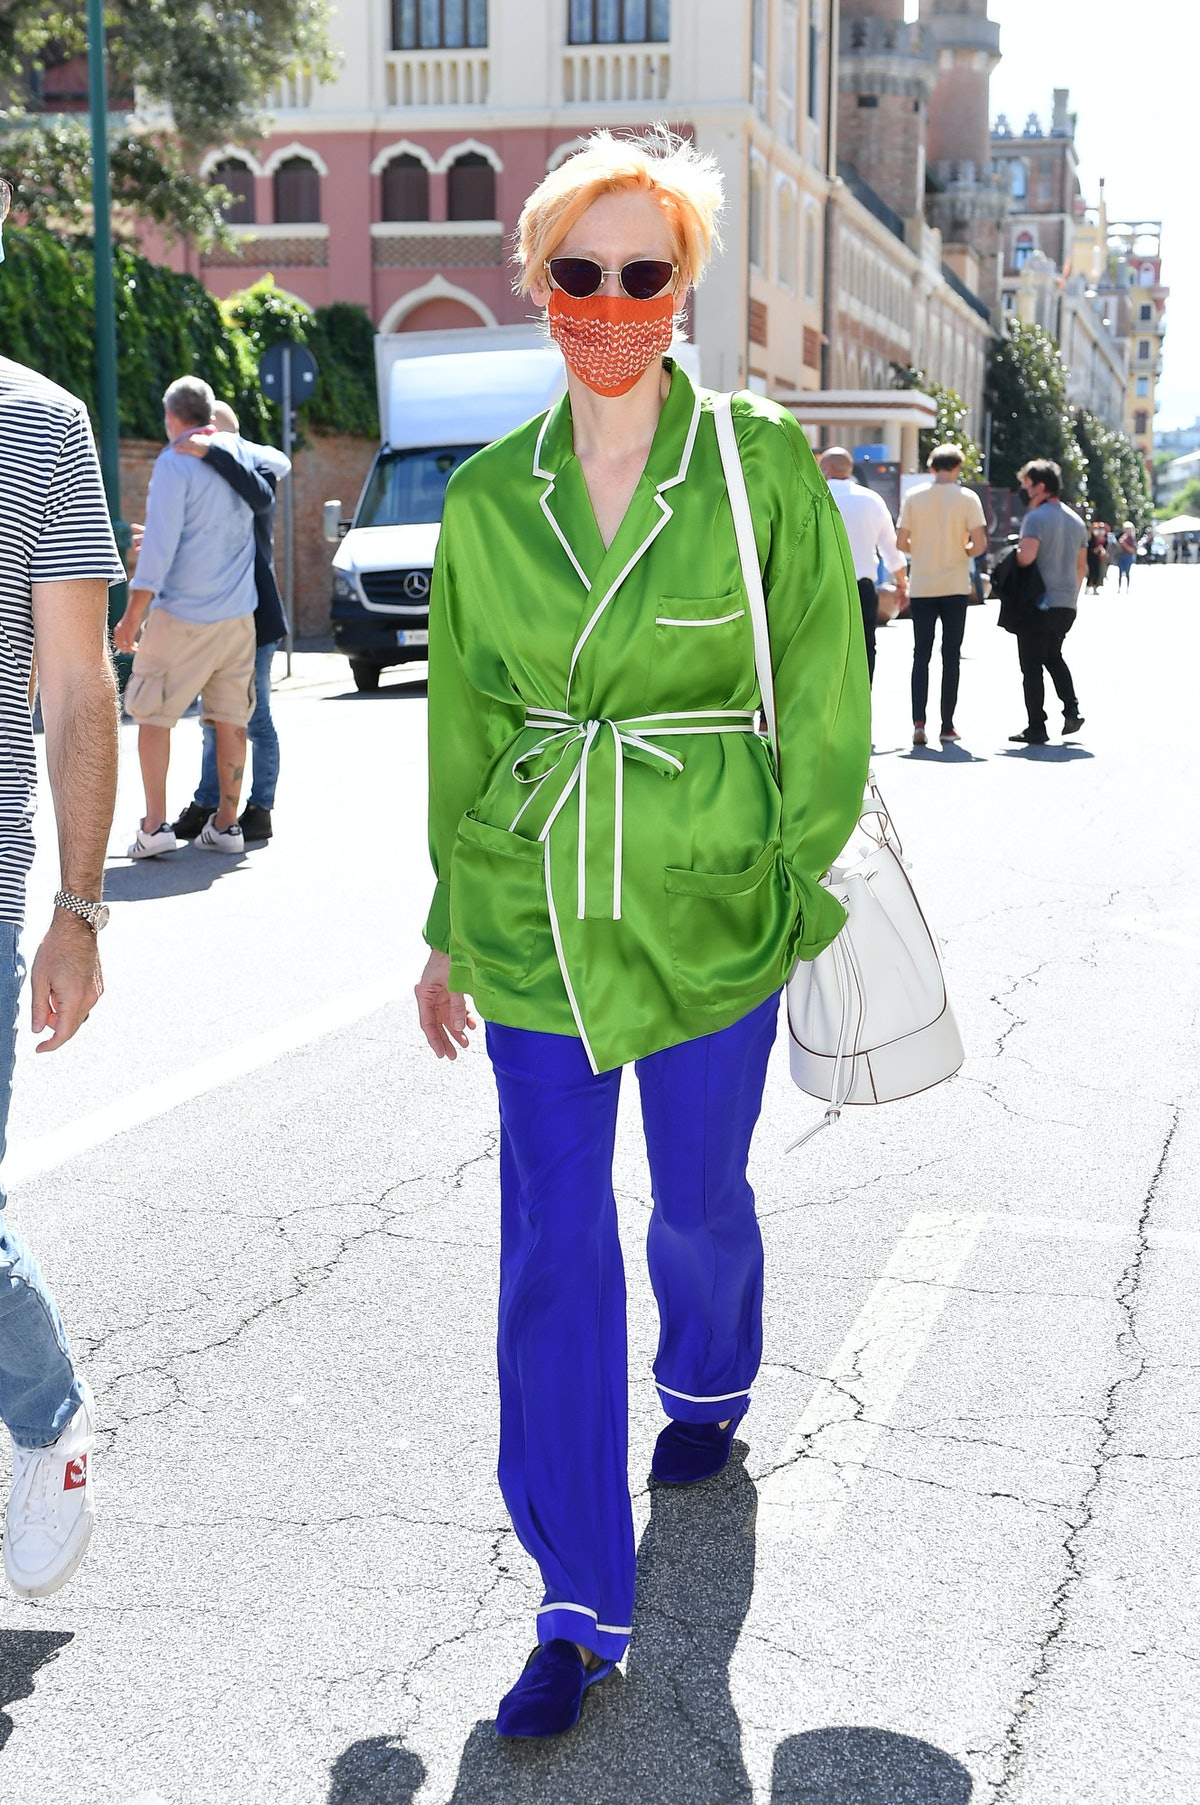 Tilda Swinton out and about in Venice